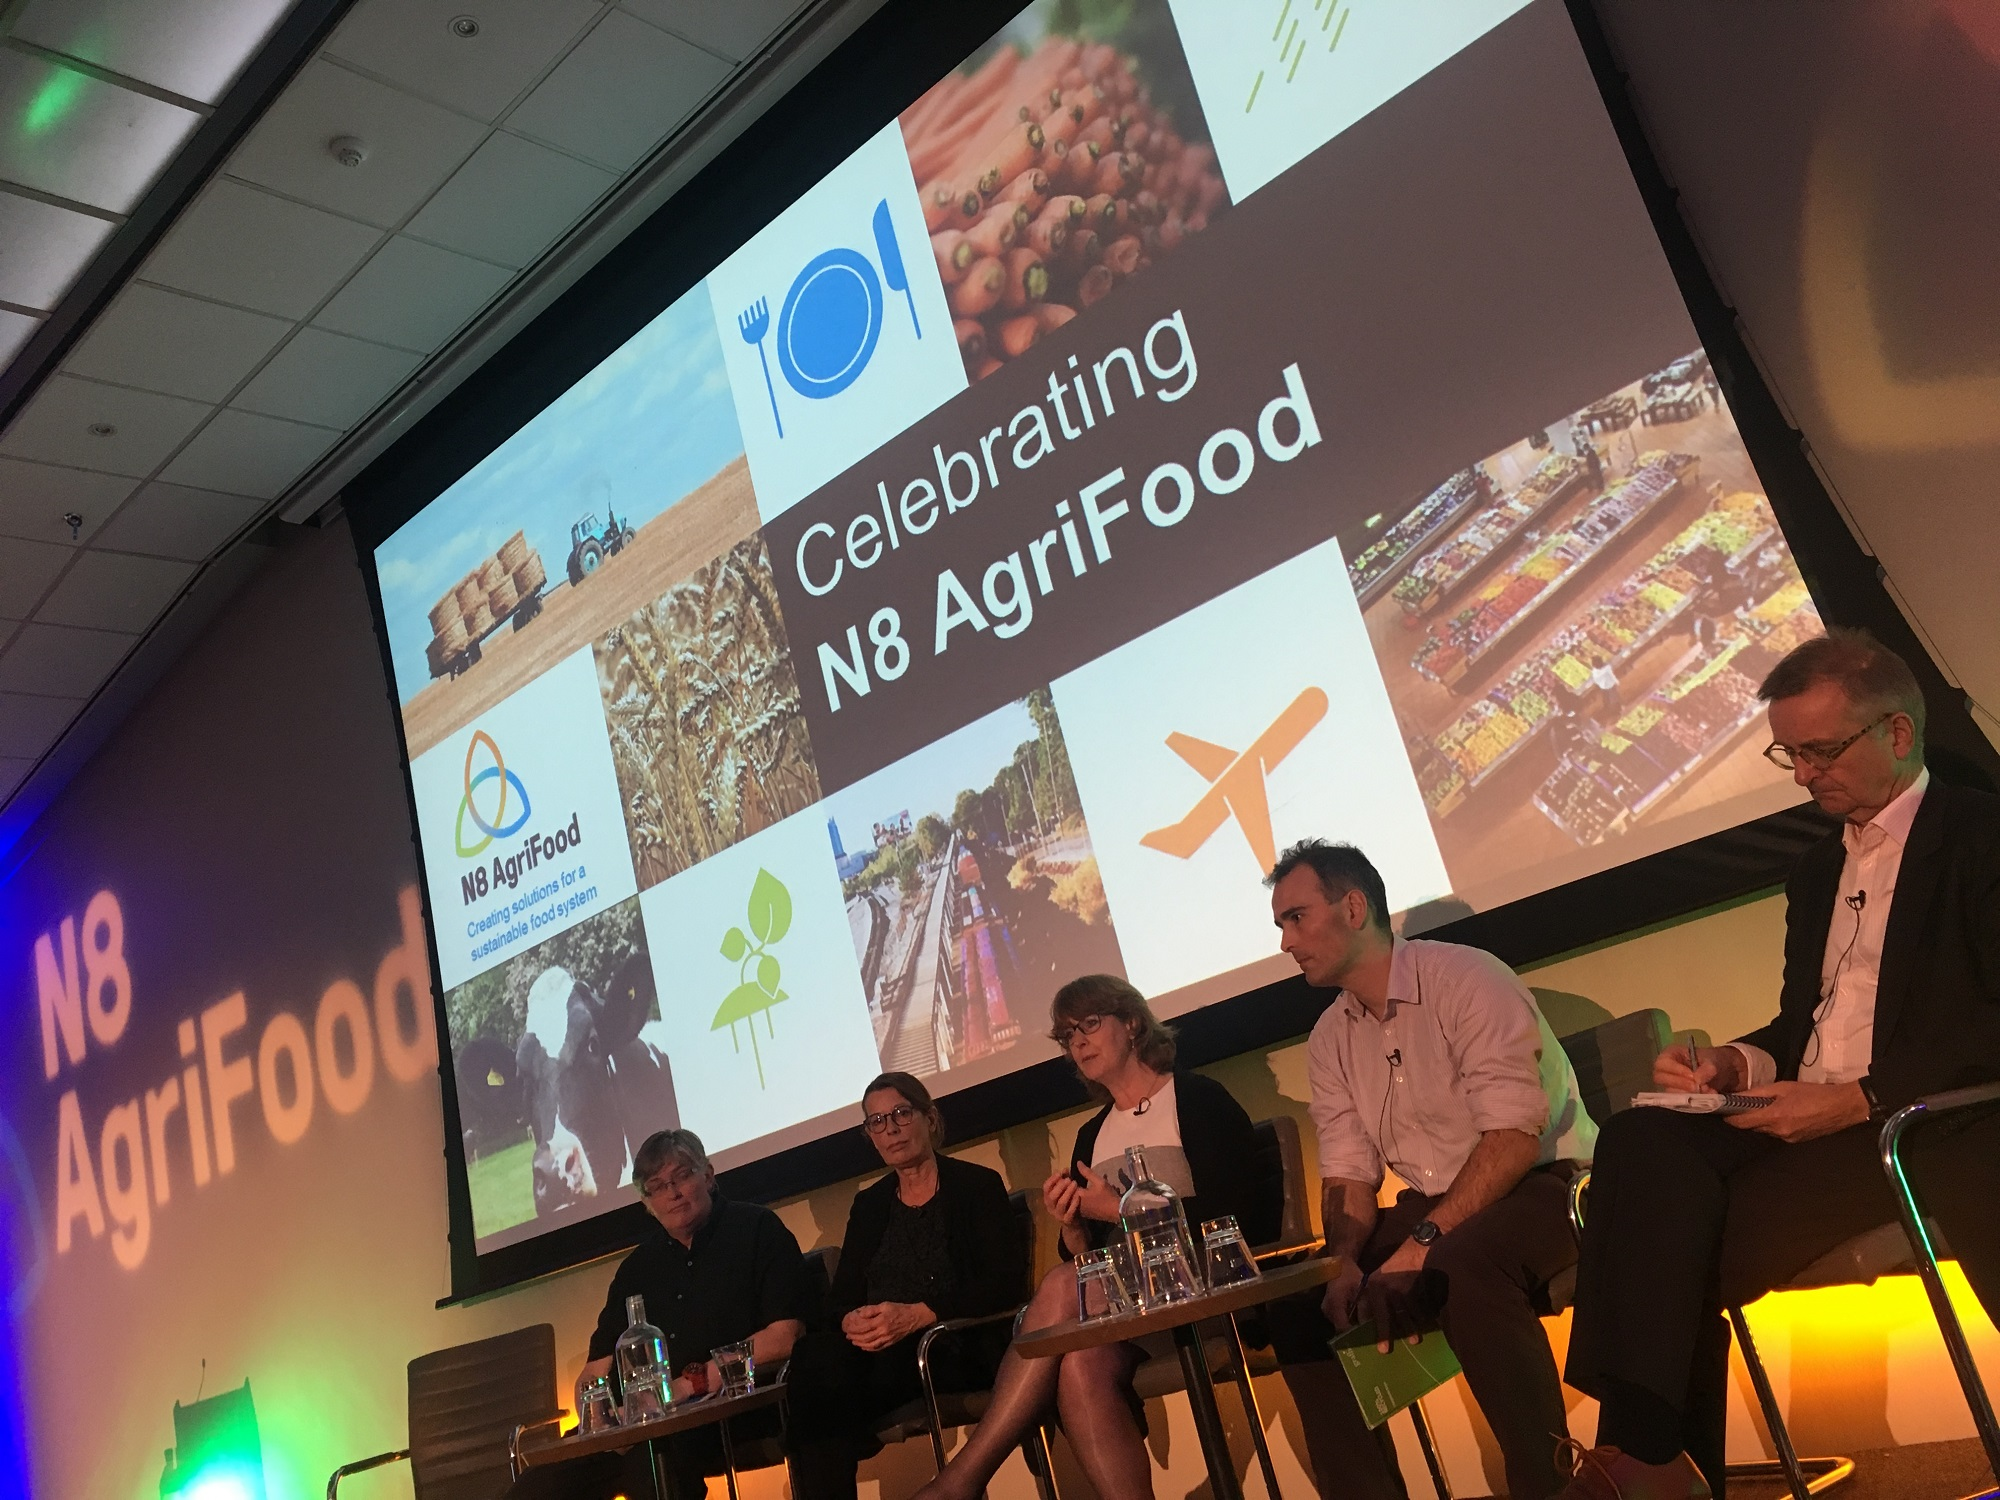 Day 2 - N8 AgriFood Conference